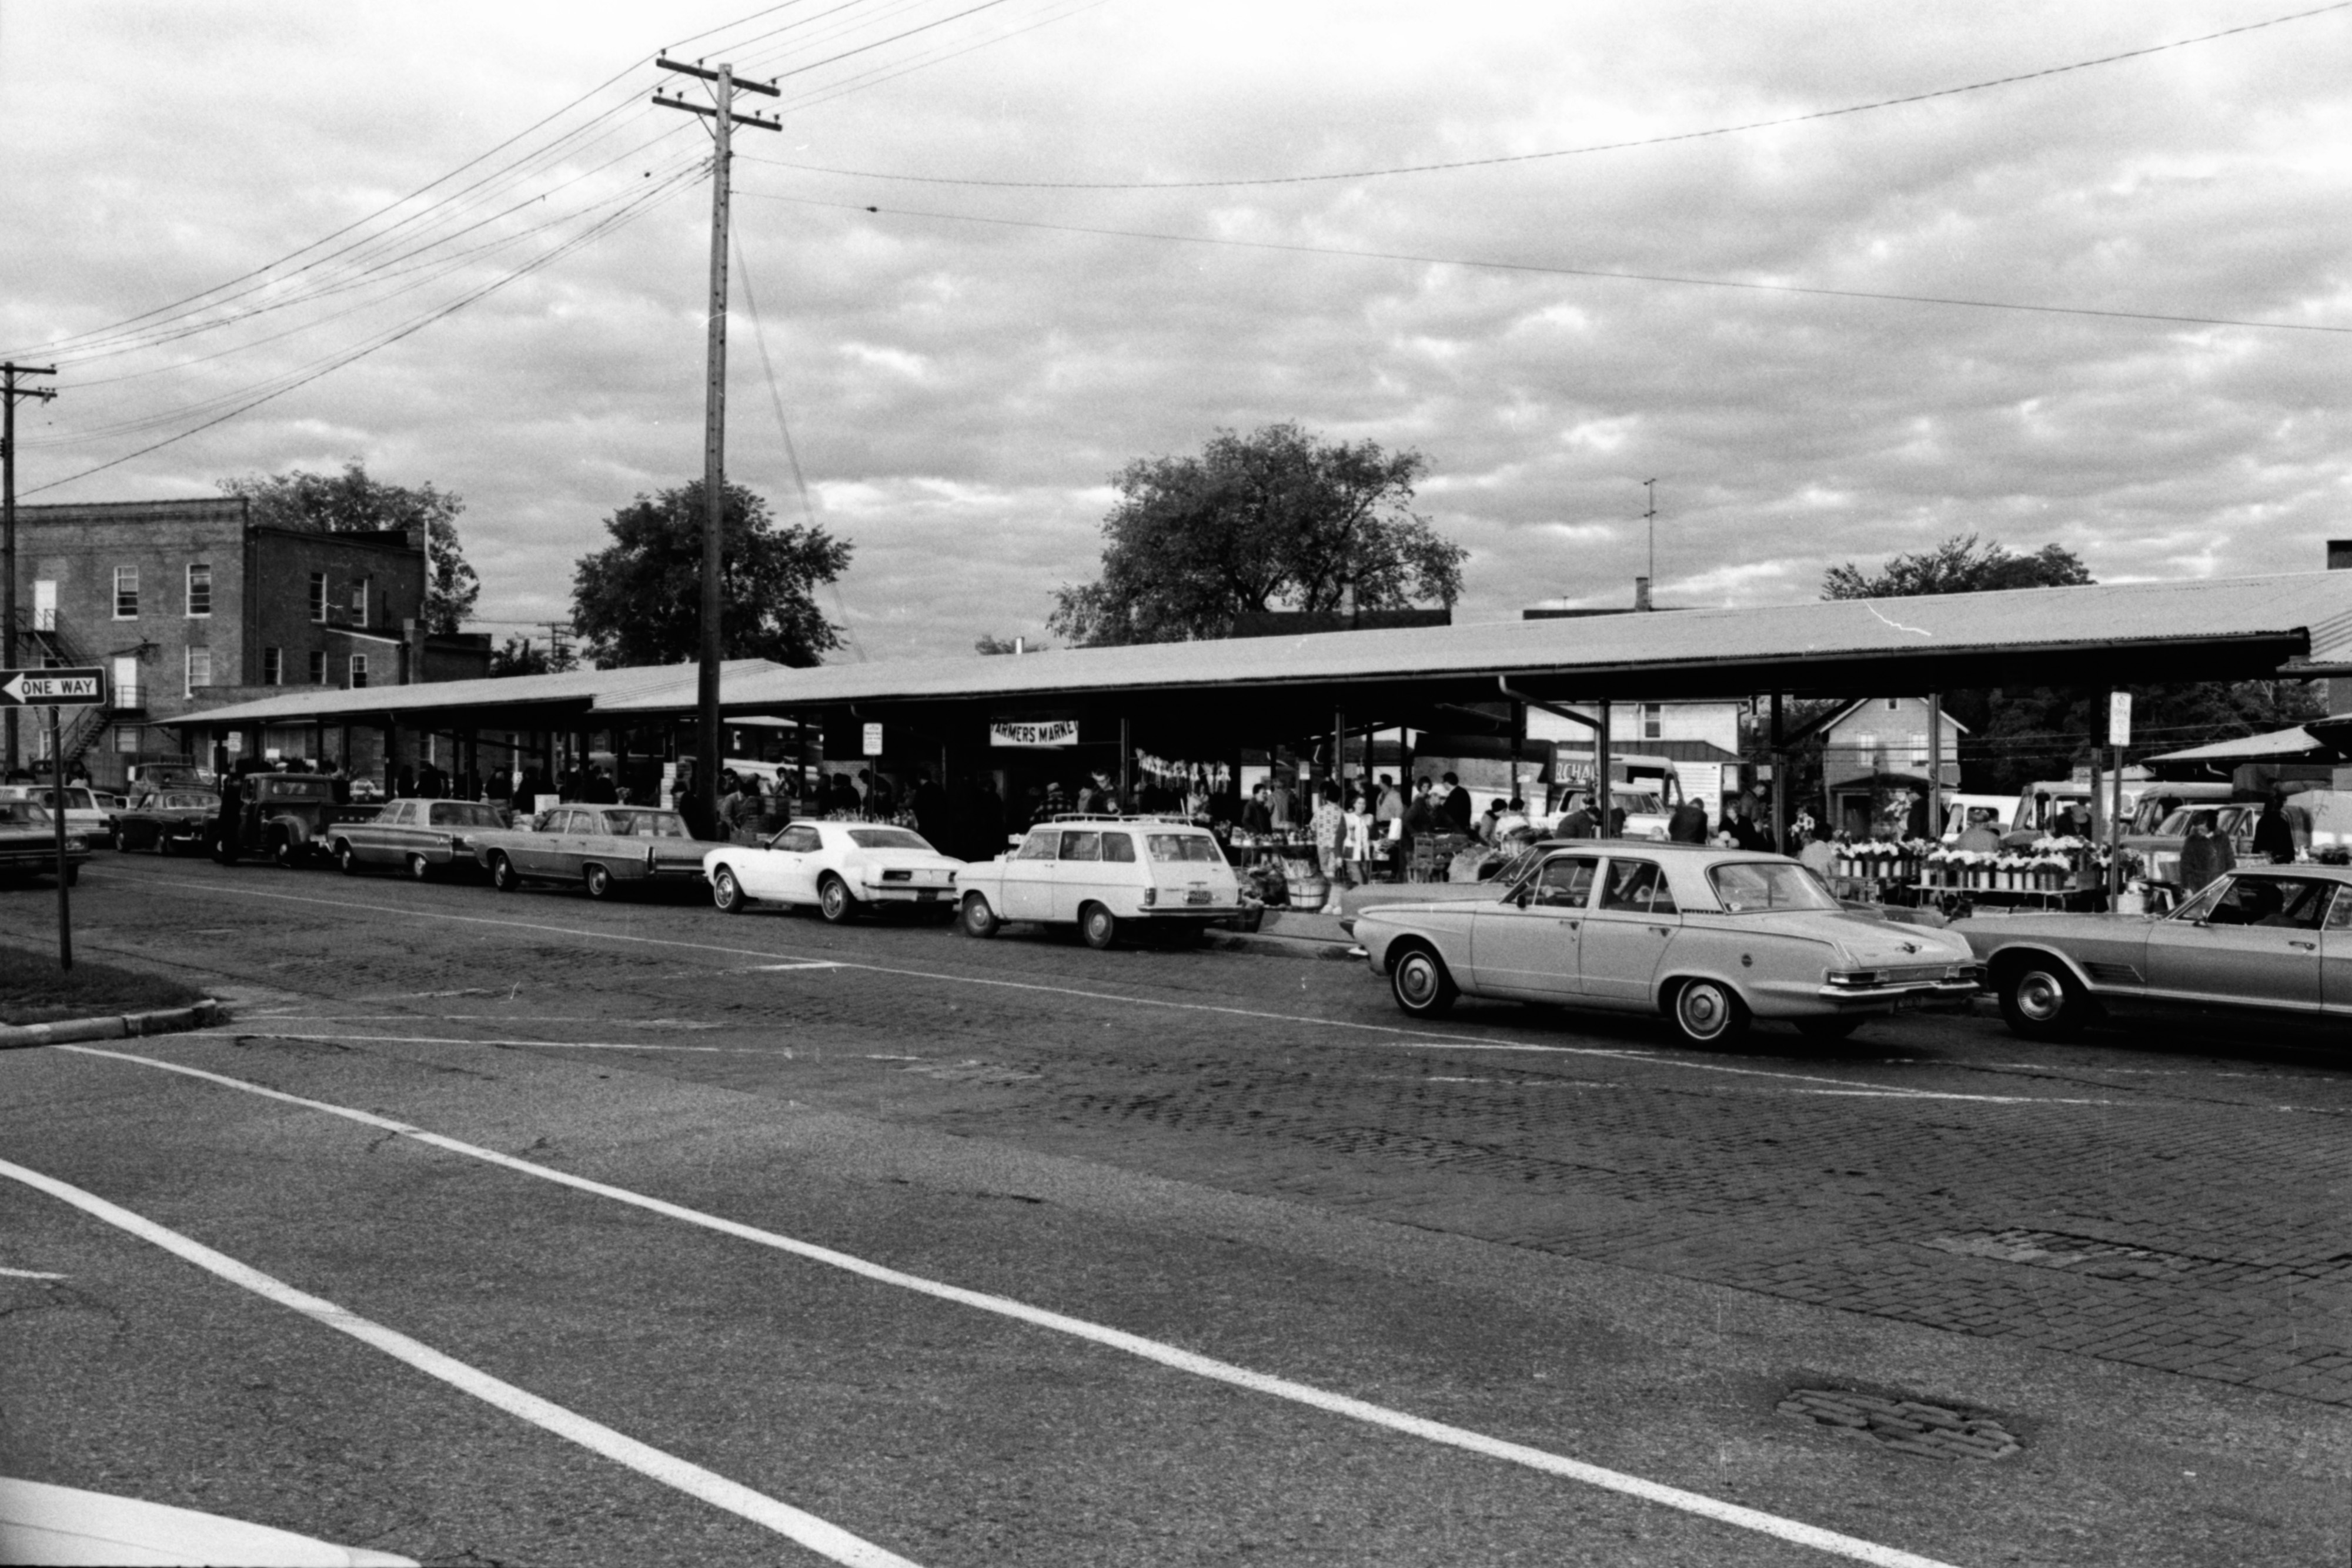 Cars Parked at the Ann Arbor Farmers Market, October 1968 image